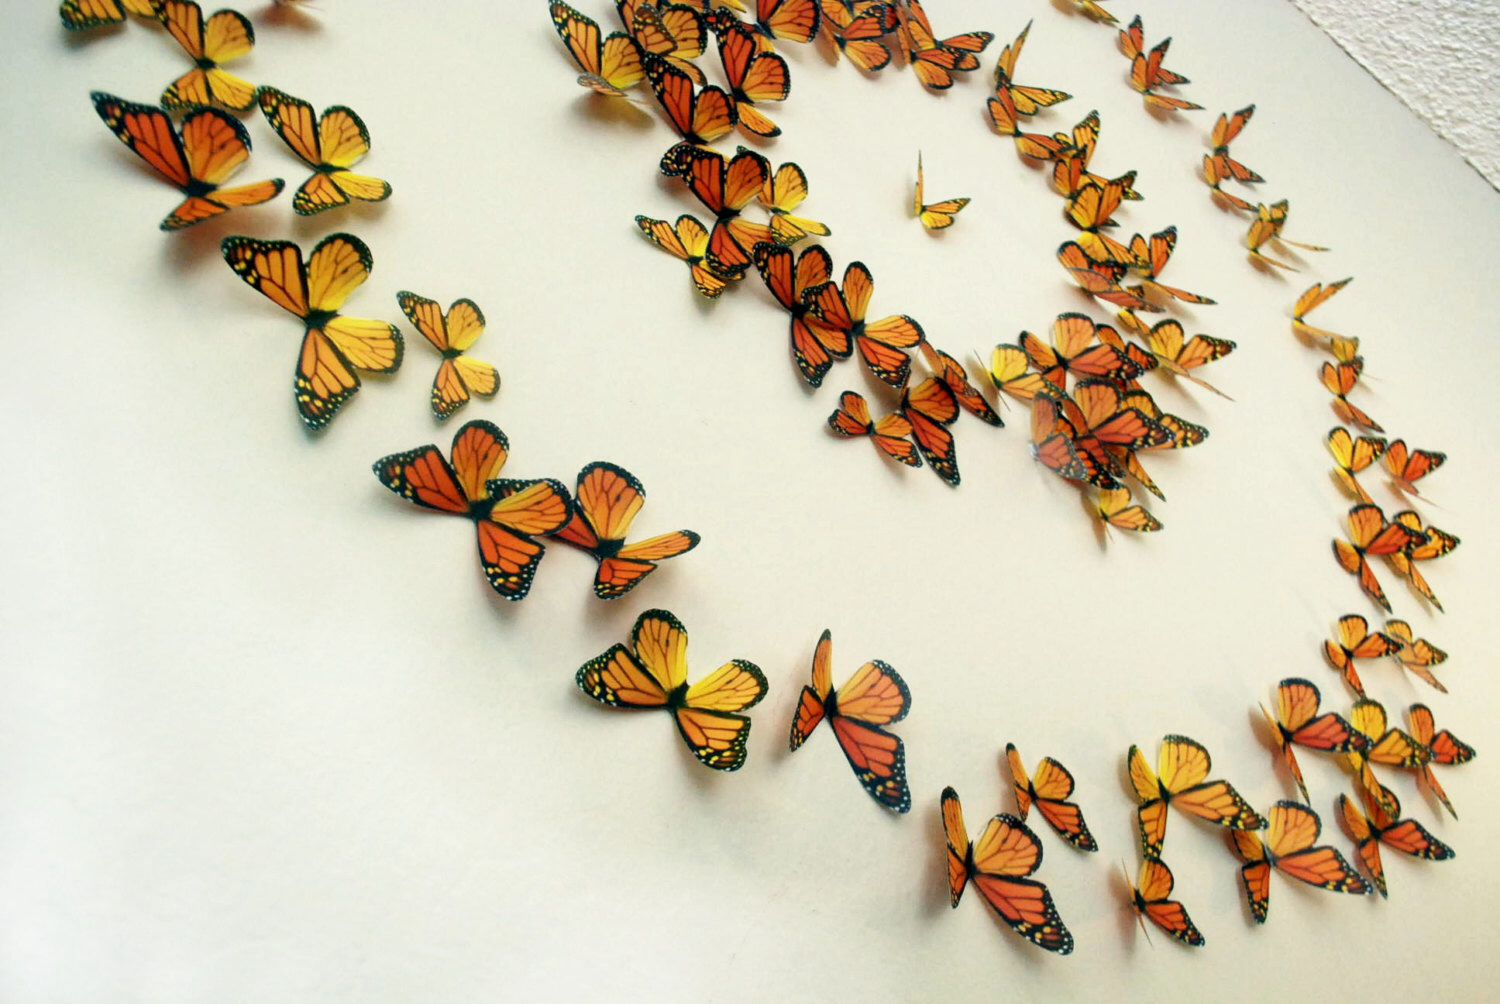 Monarch Butterflies 3d Wall Art Set Of 100 By Heidishubbub On